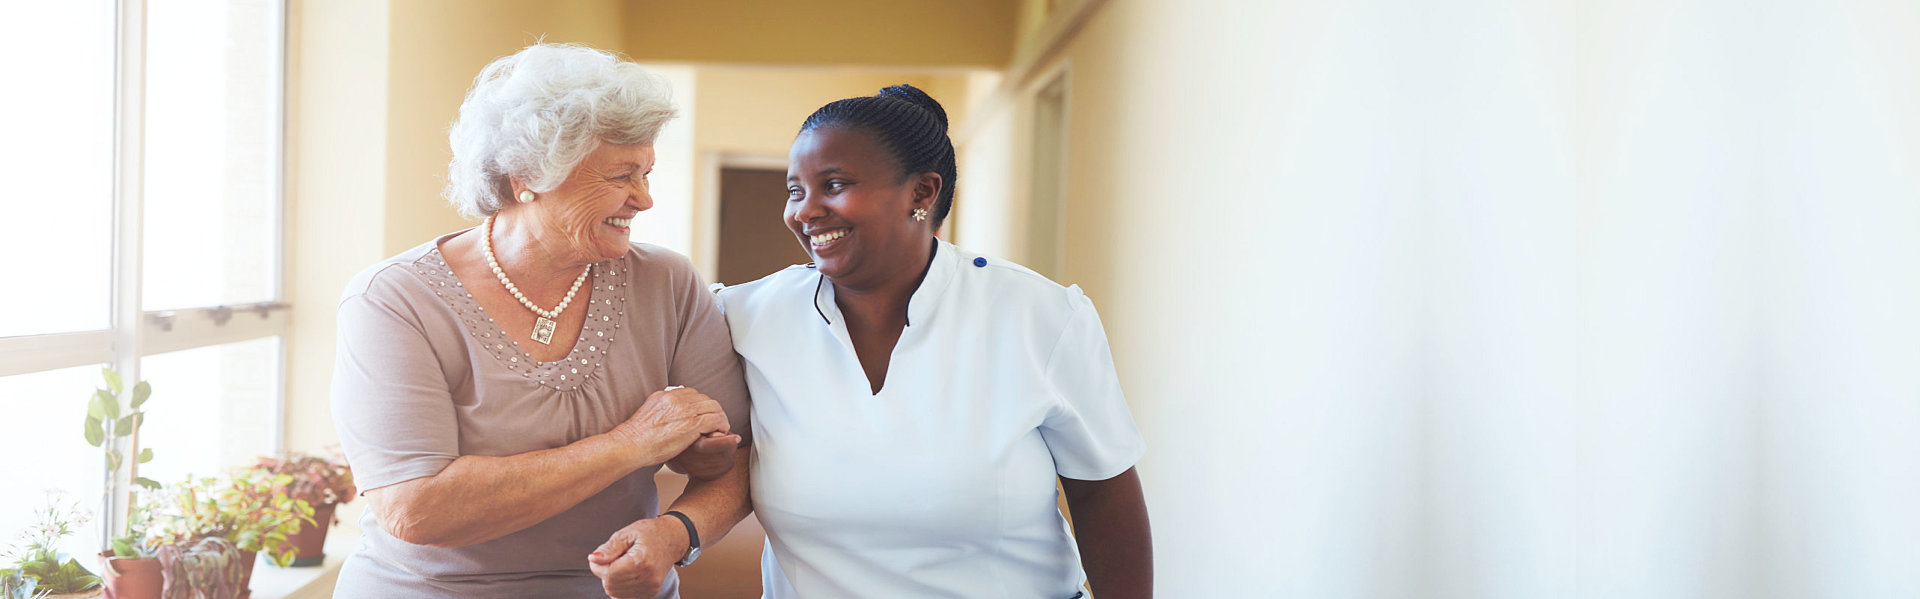 portrait of smiling caregiver and senior walking together